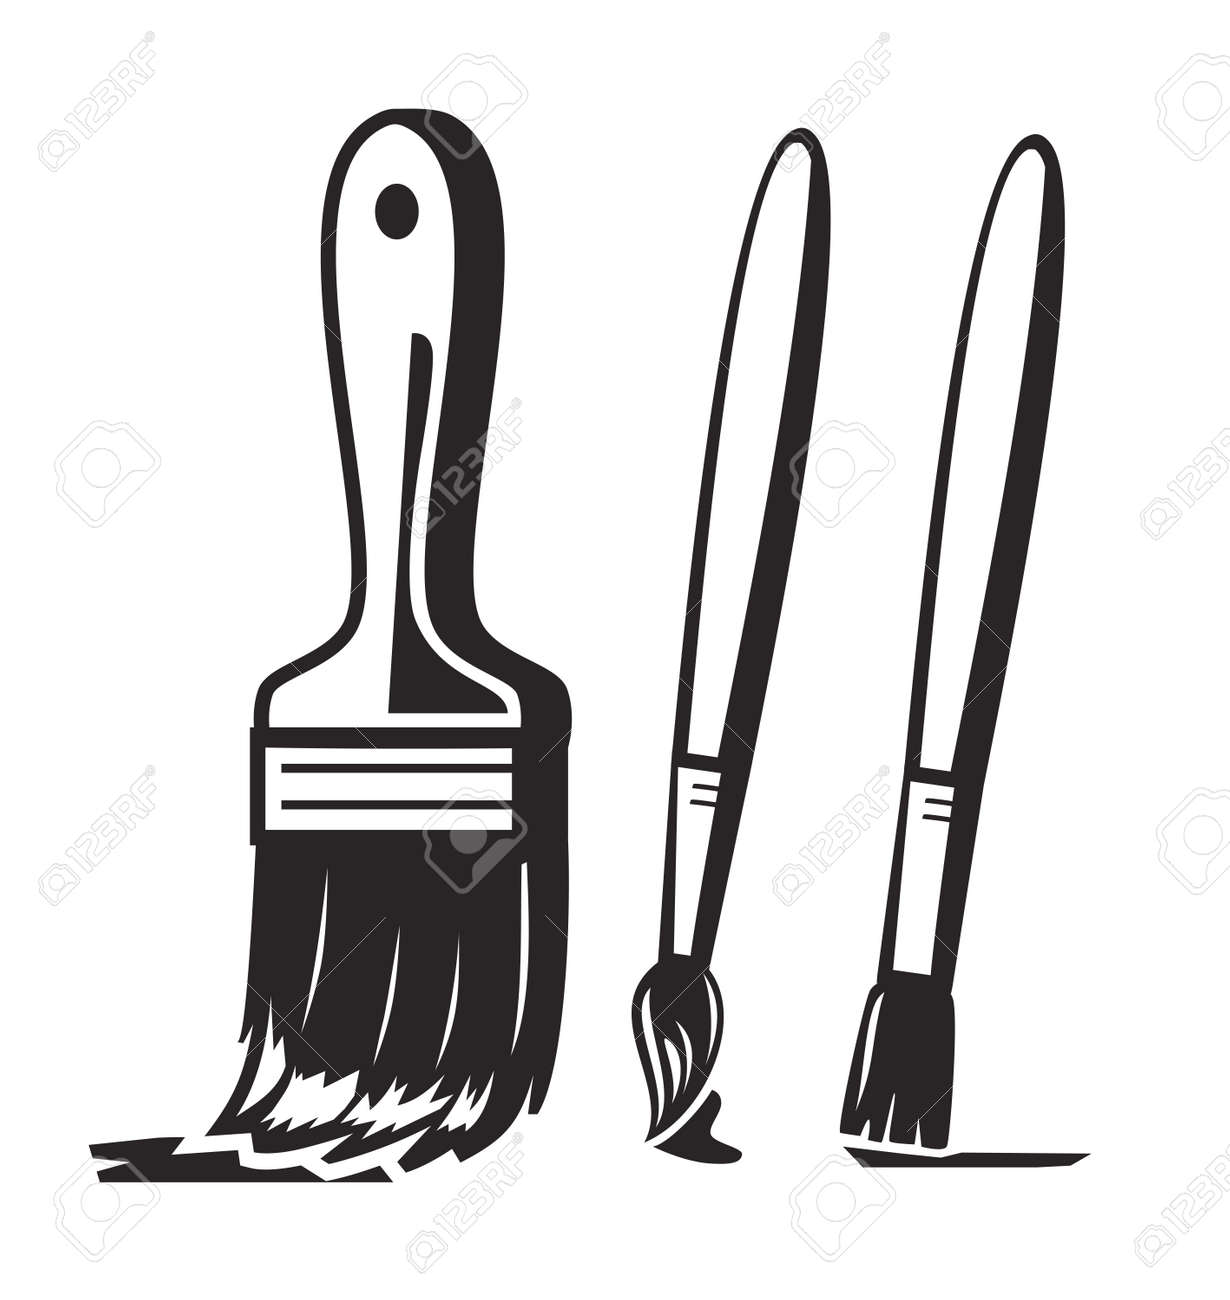 vector black paint brush icon on white background royalty free rh 123rf com paint brush vector png paint brush vector free